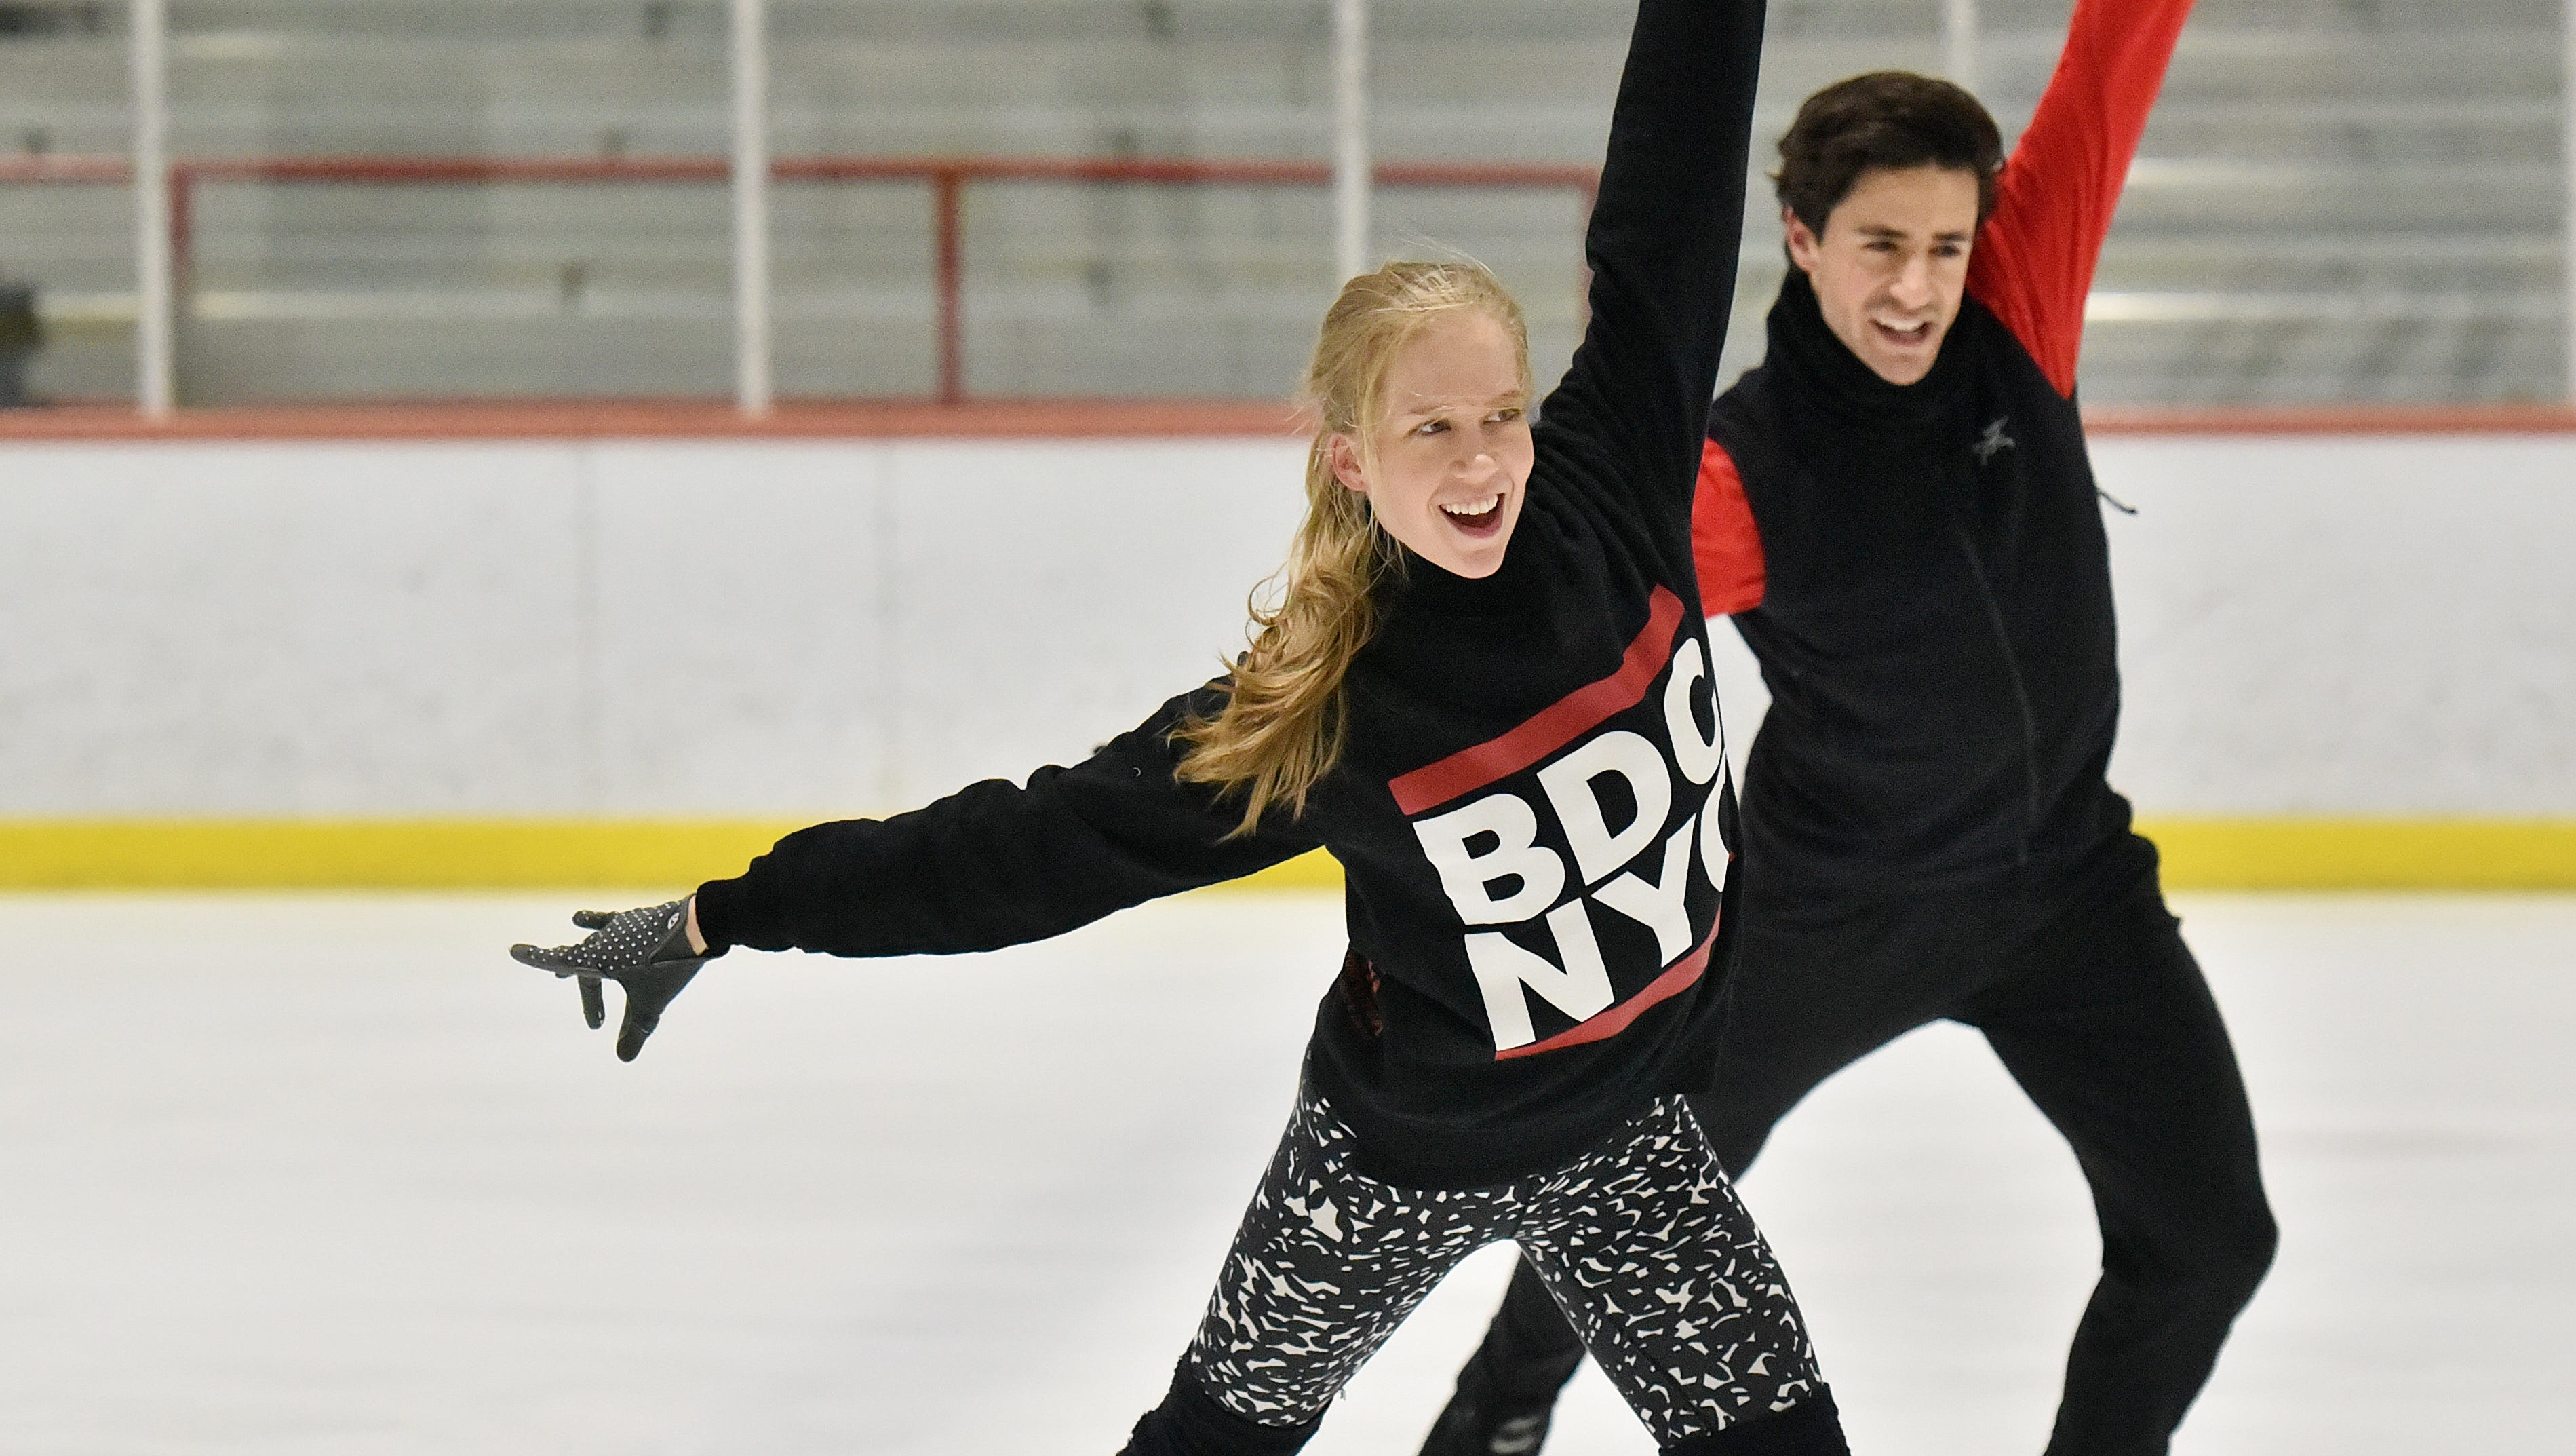 Ice House In Hackensack Is Sending 11 Skaters To Winter Olympics